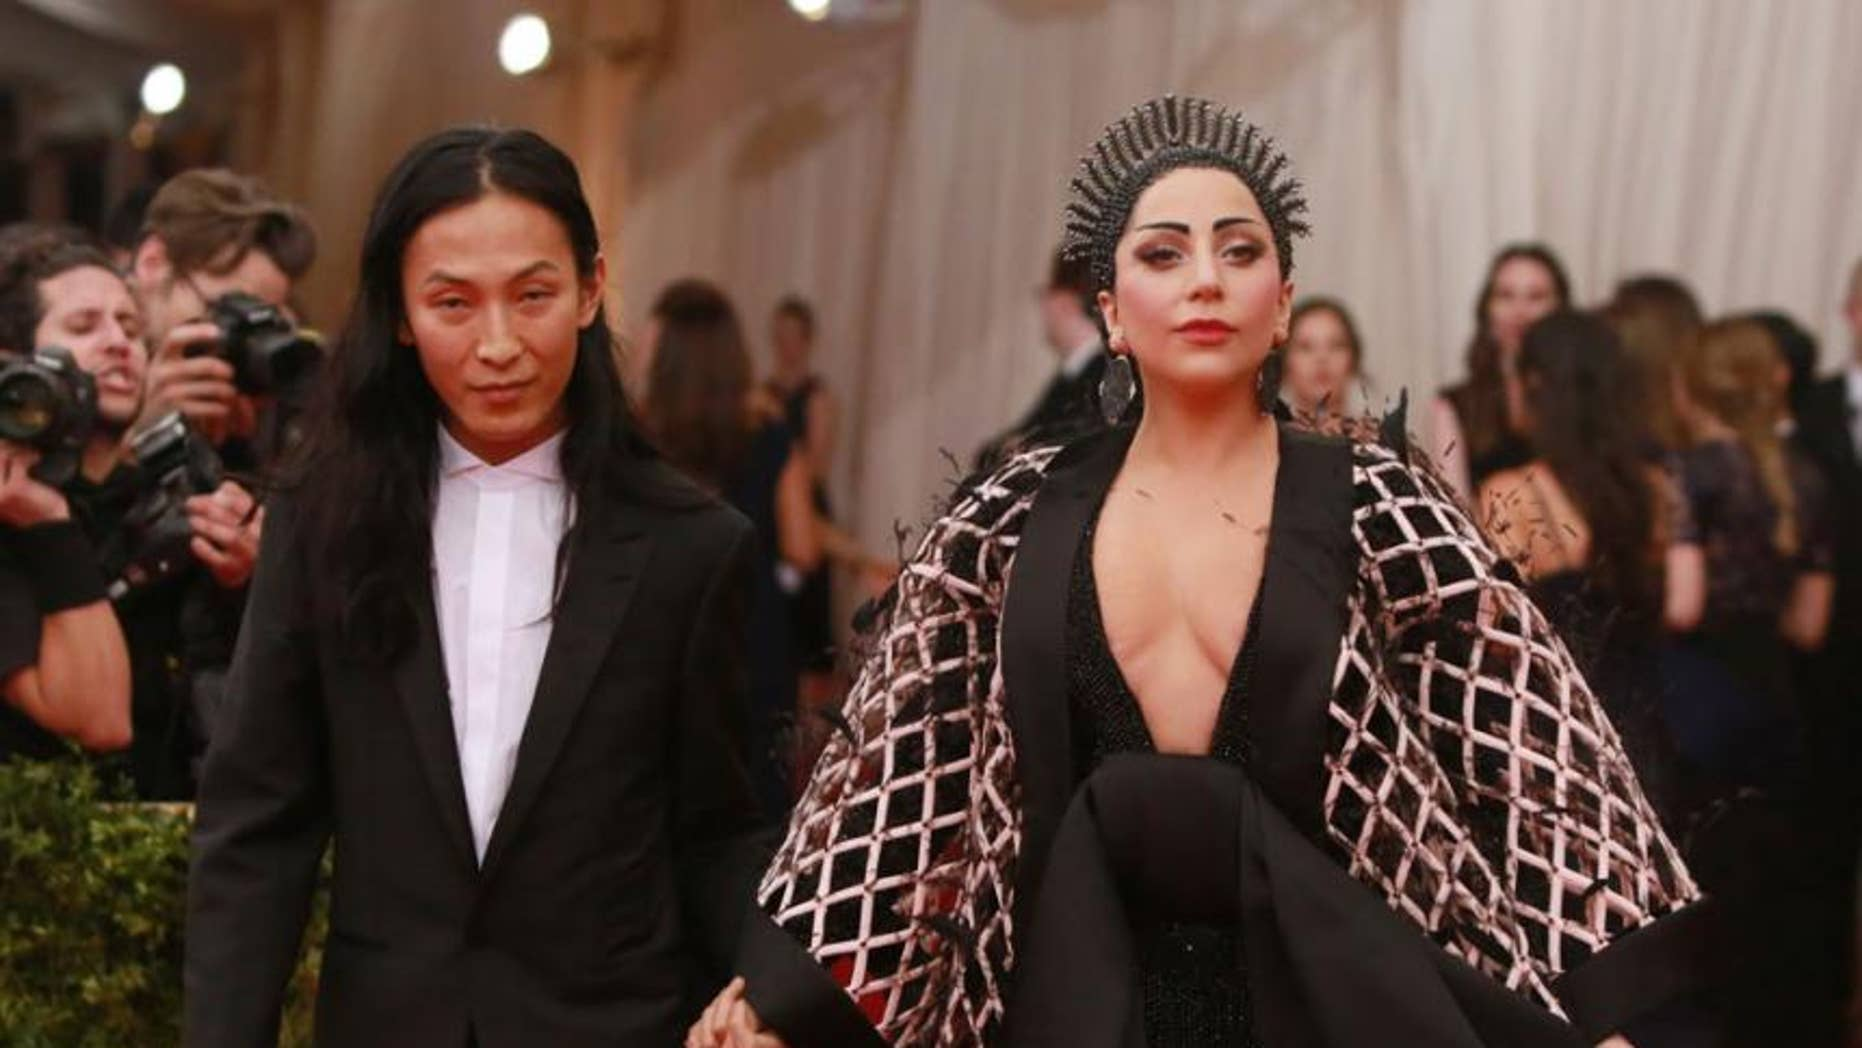 Lady Gaga to be one of the host for the star-studded 2019 Met Gala.